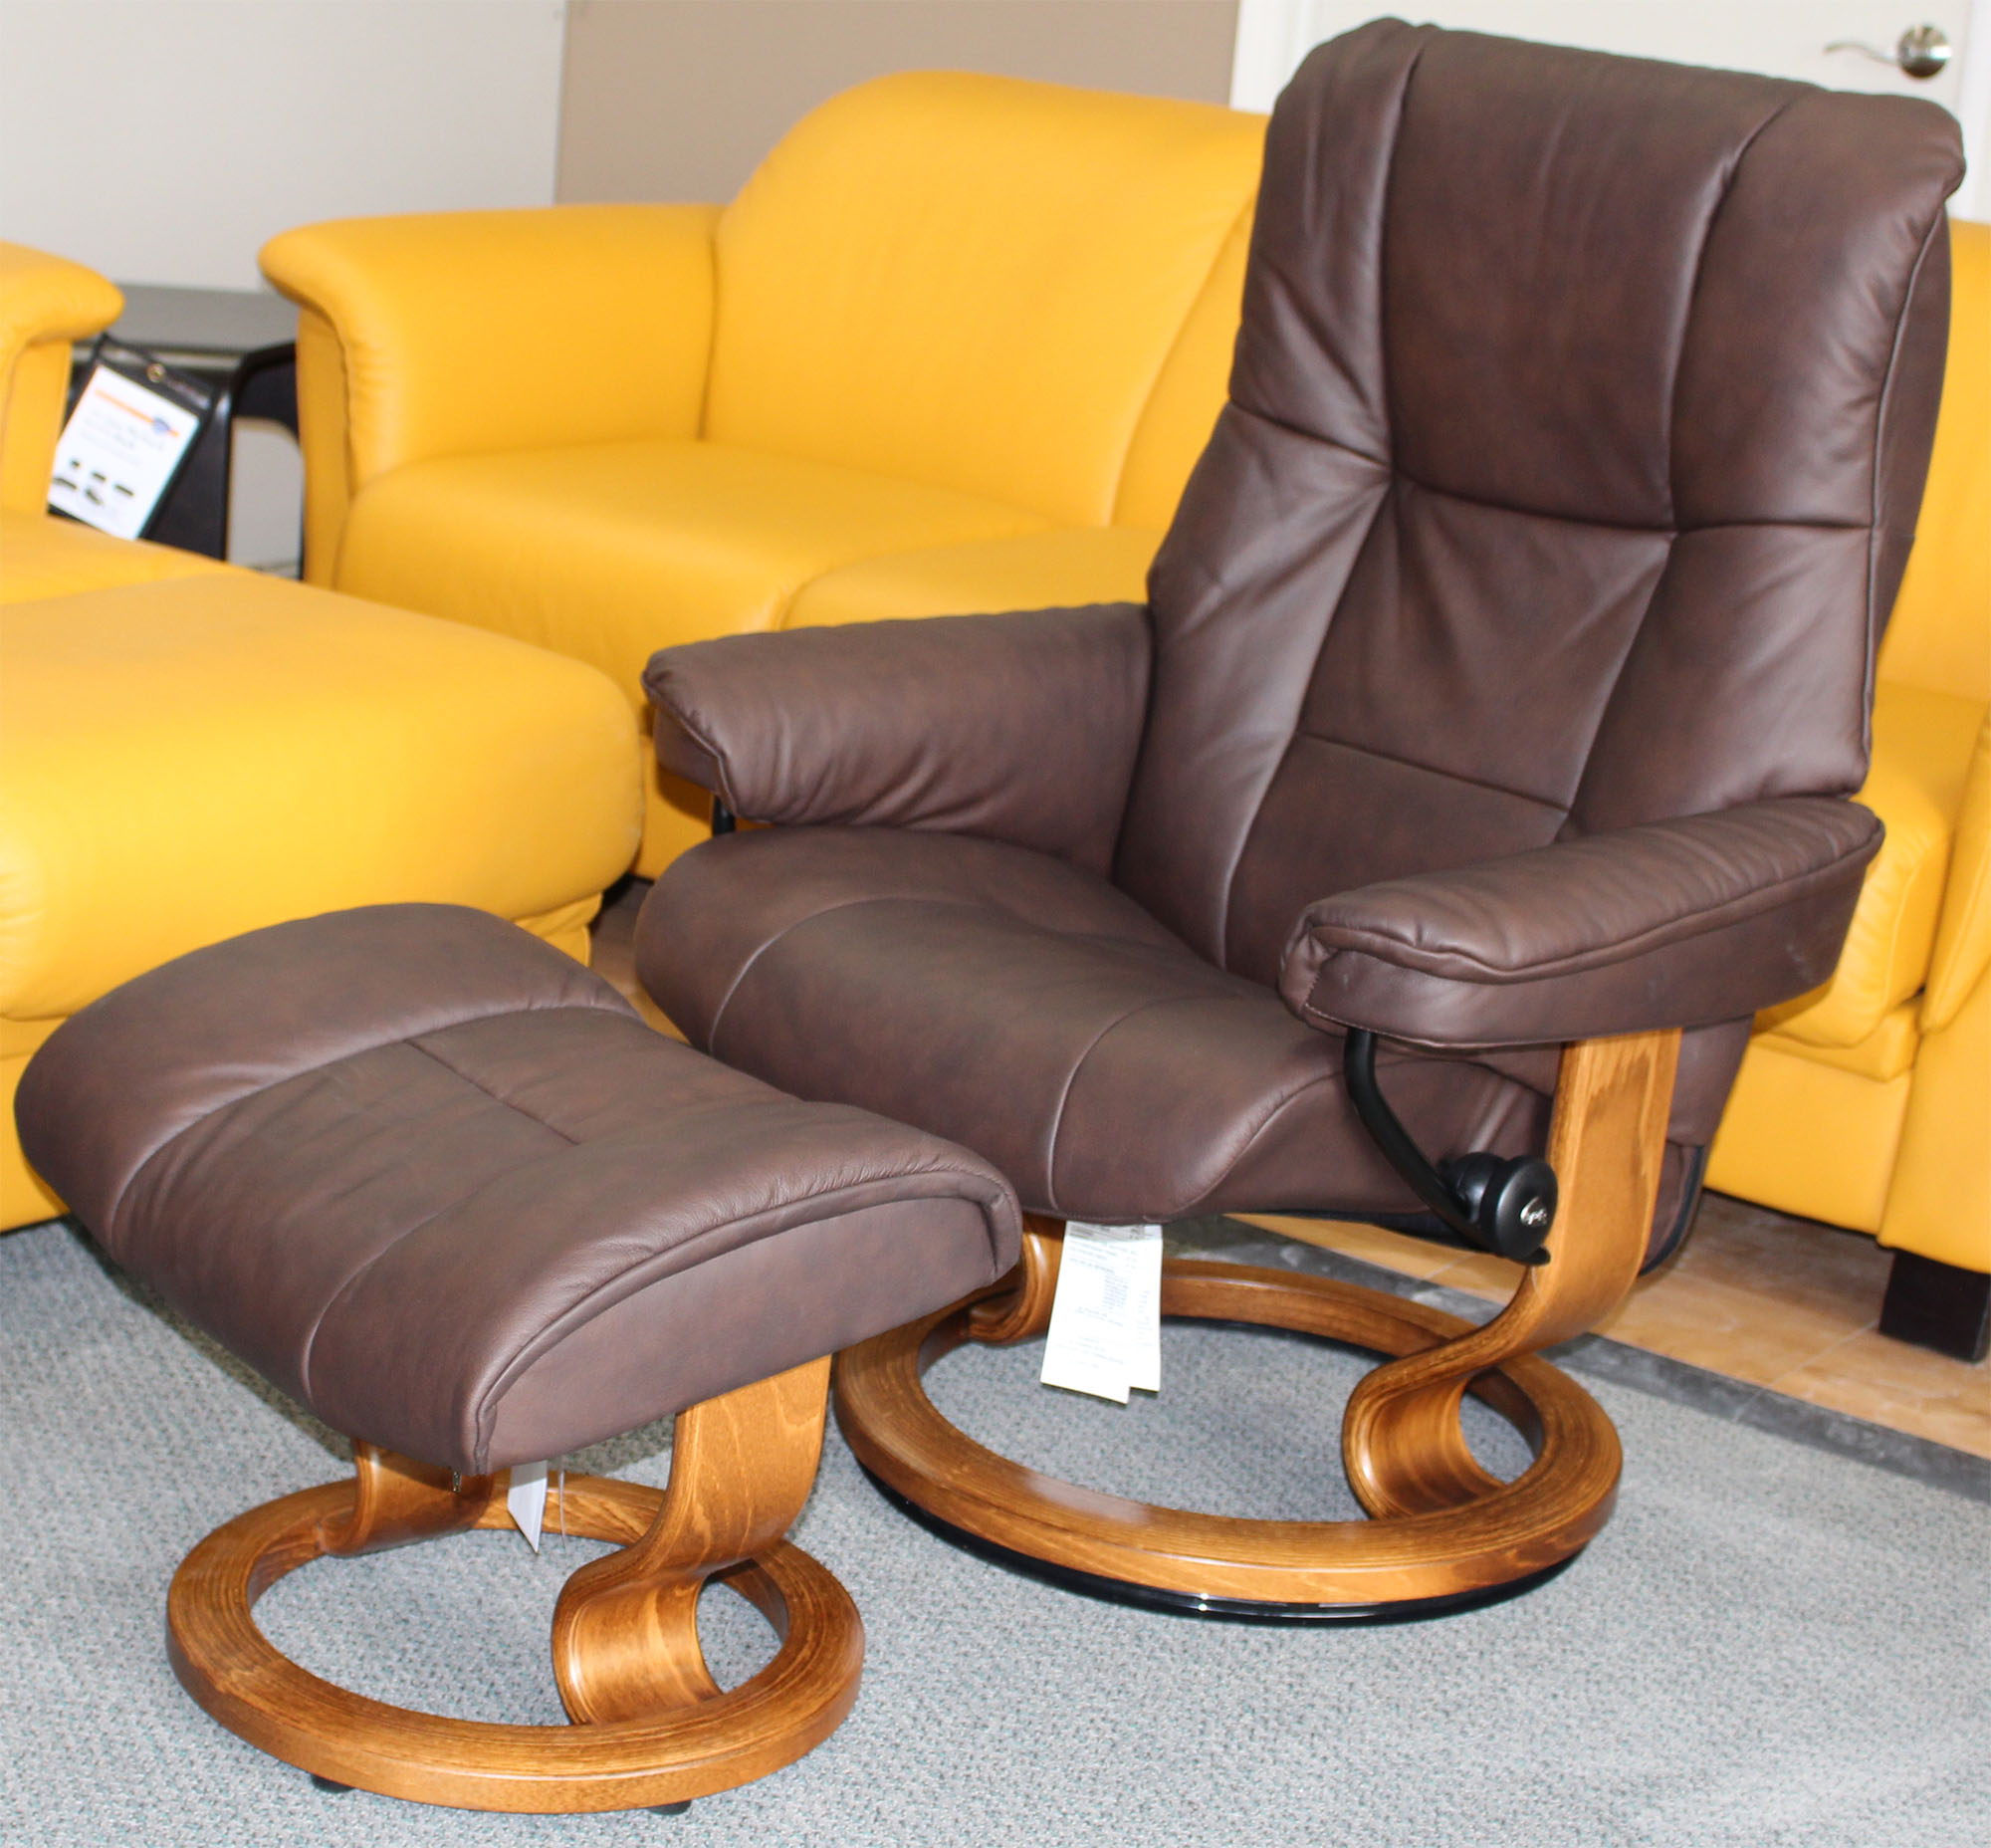 Stressless Sofa Dealers Stressless Classic Hourglass Wood Base For Ekornes Recliner And Chairs